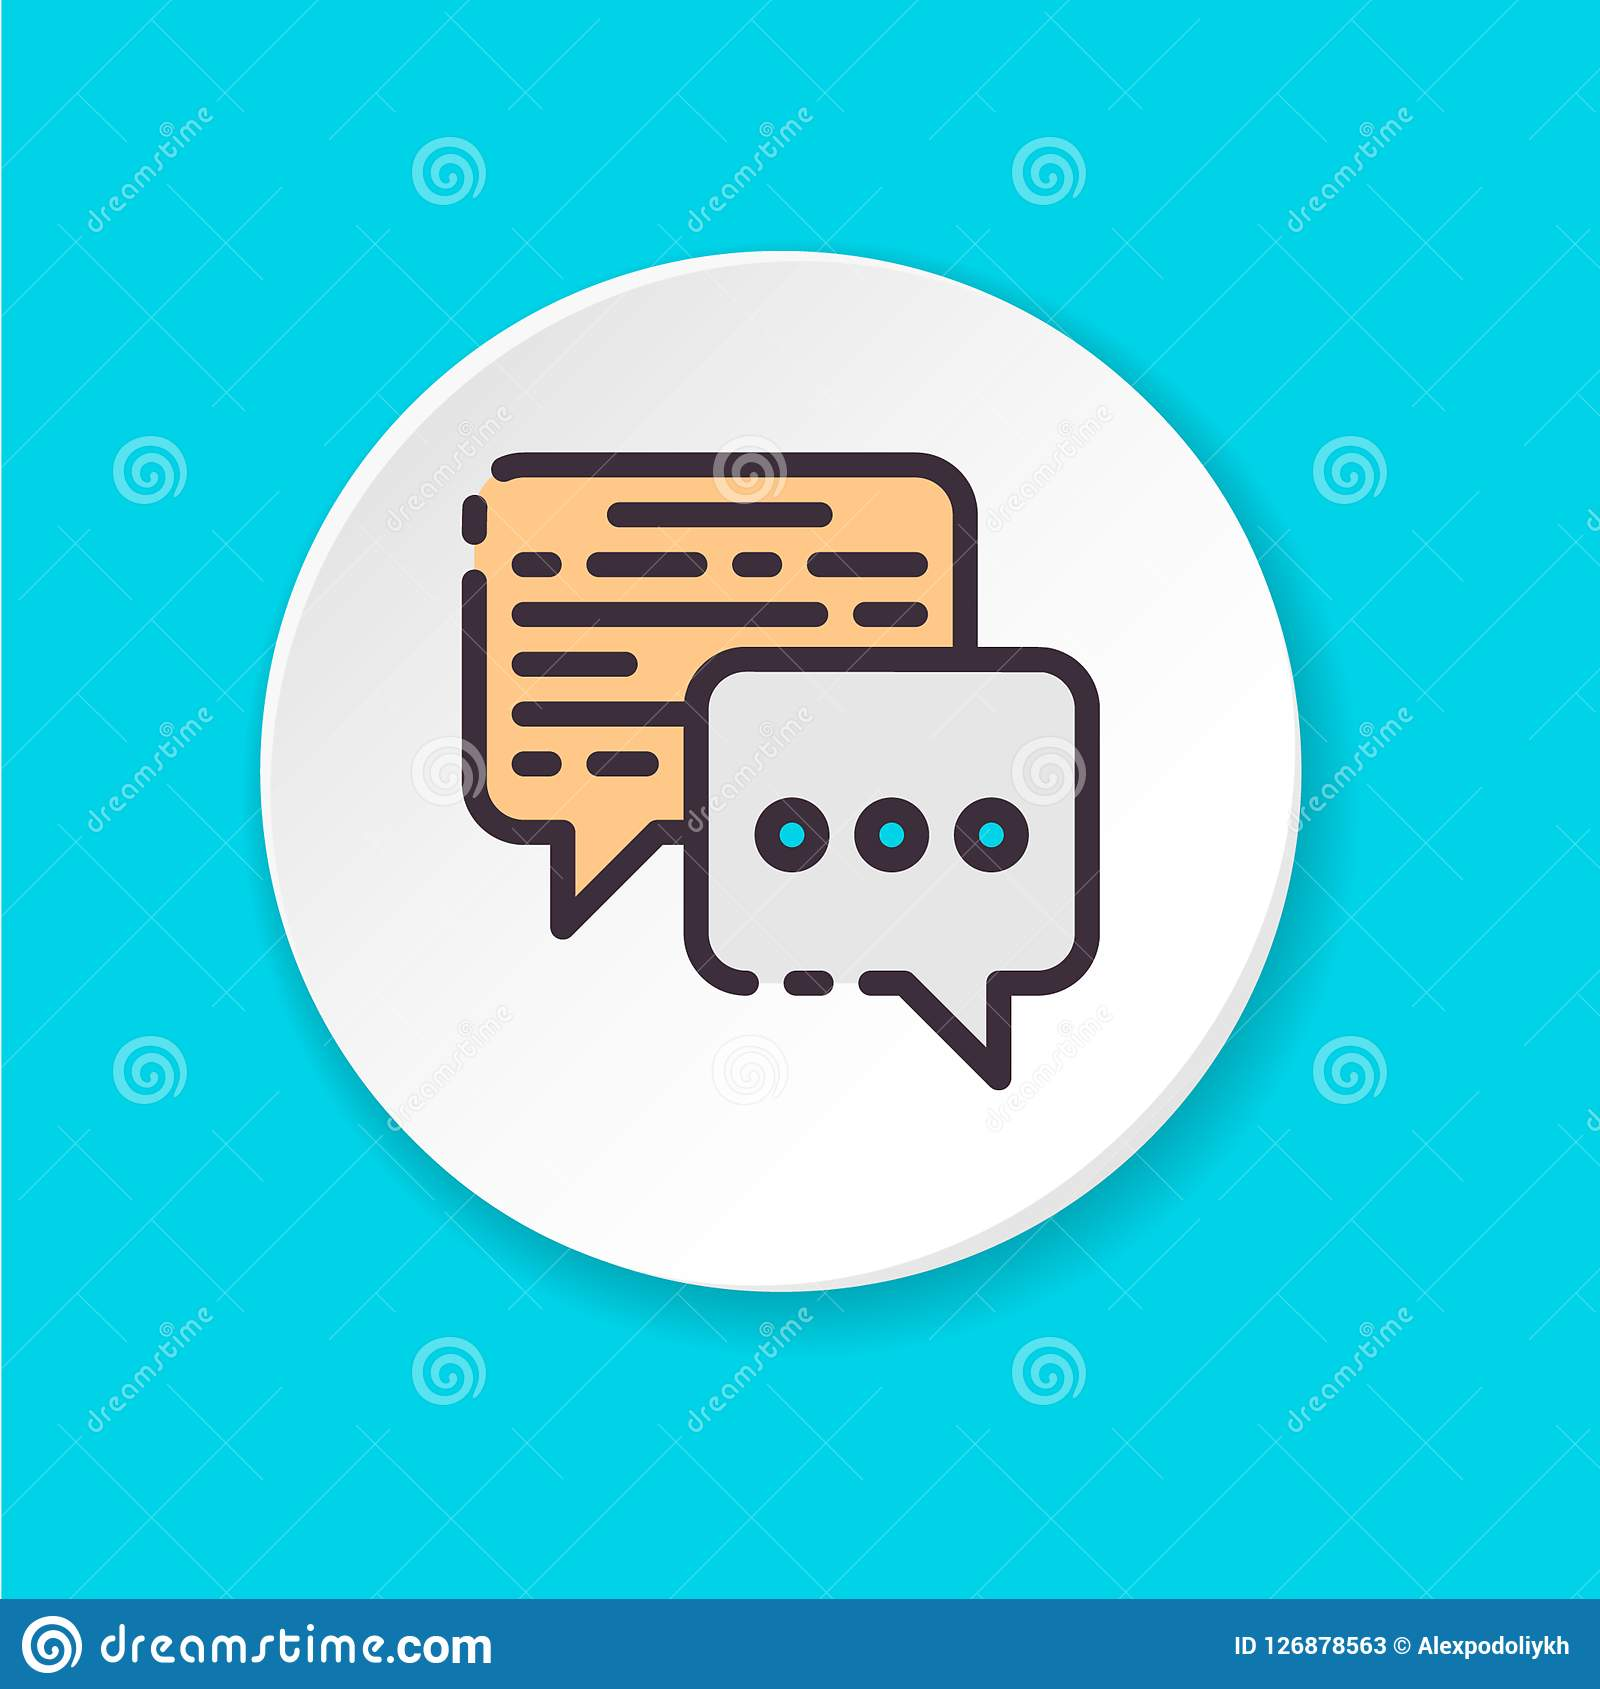 Vector flat icon business conversation. Button for web or mobile app.